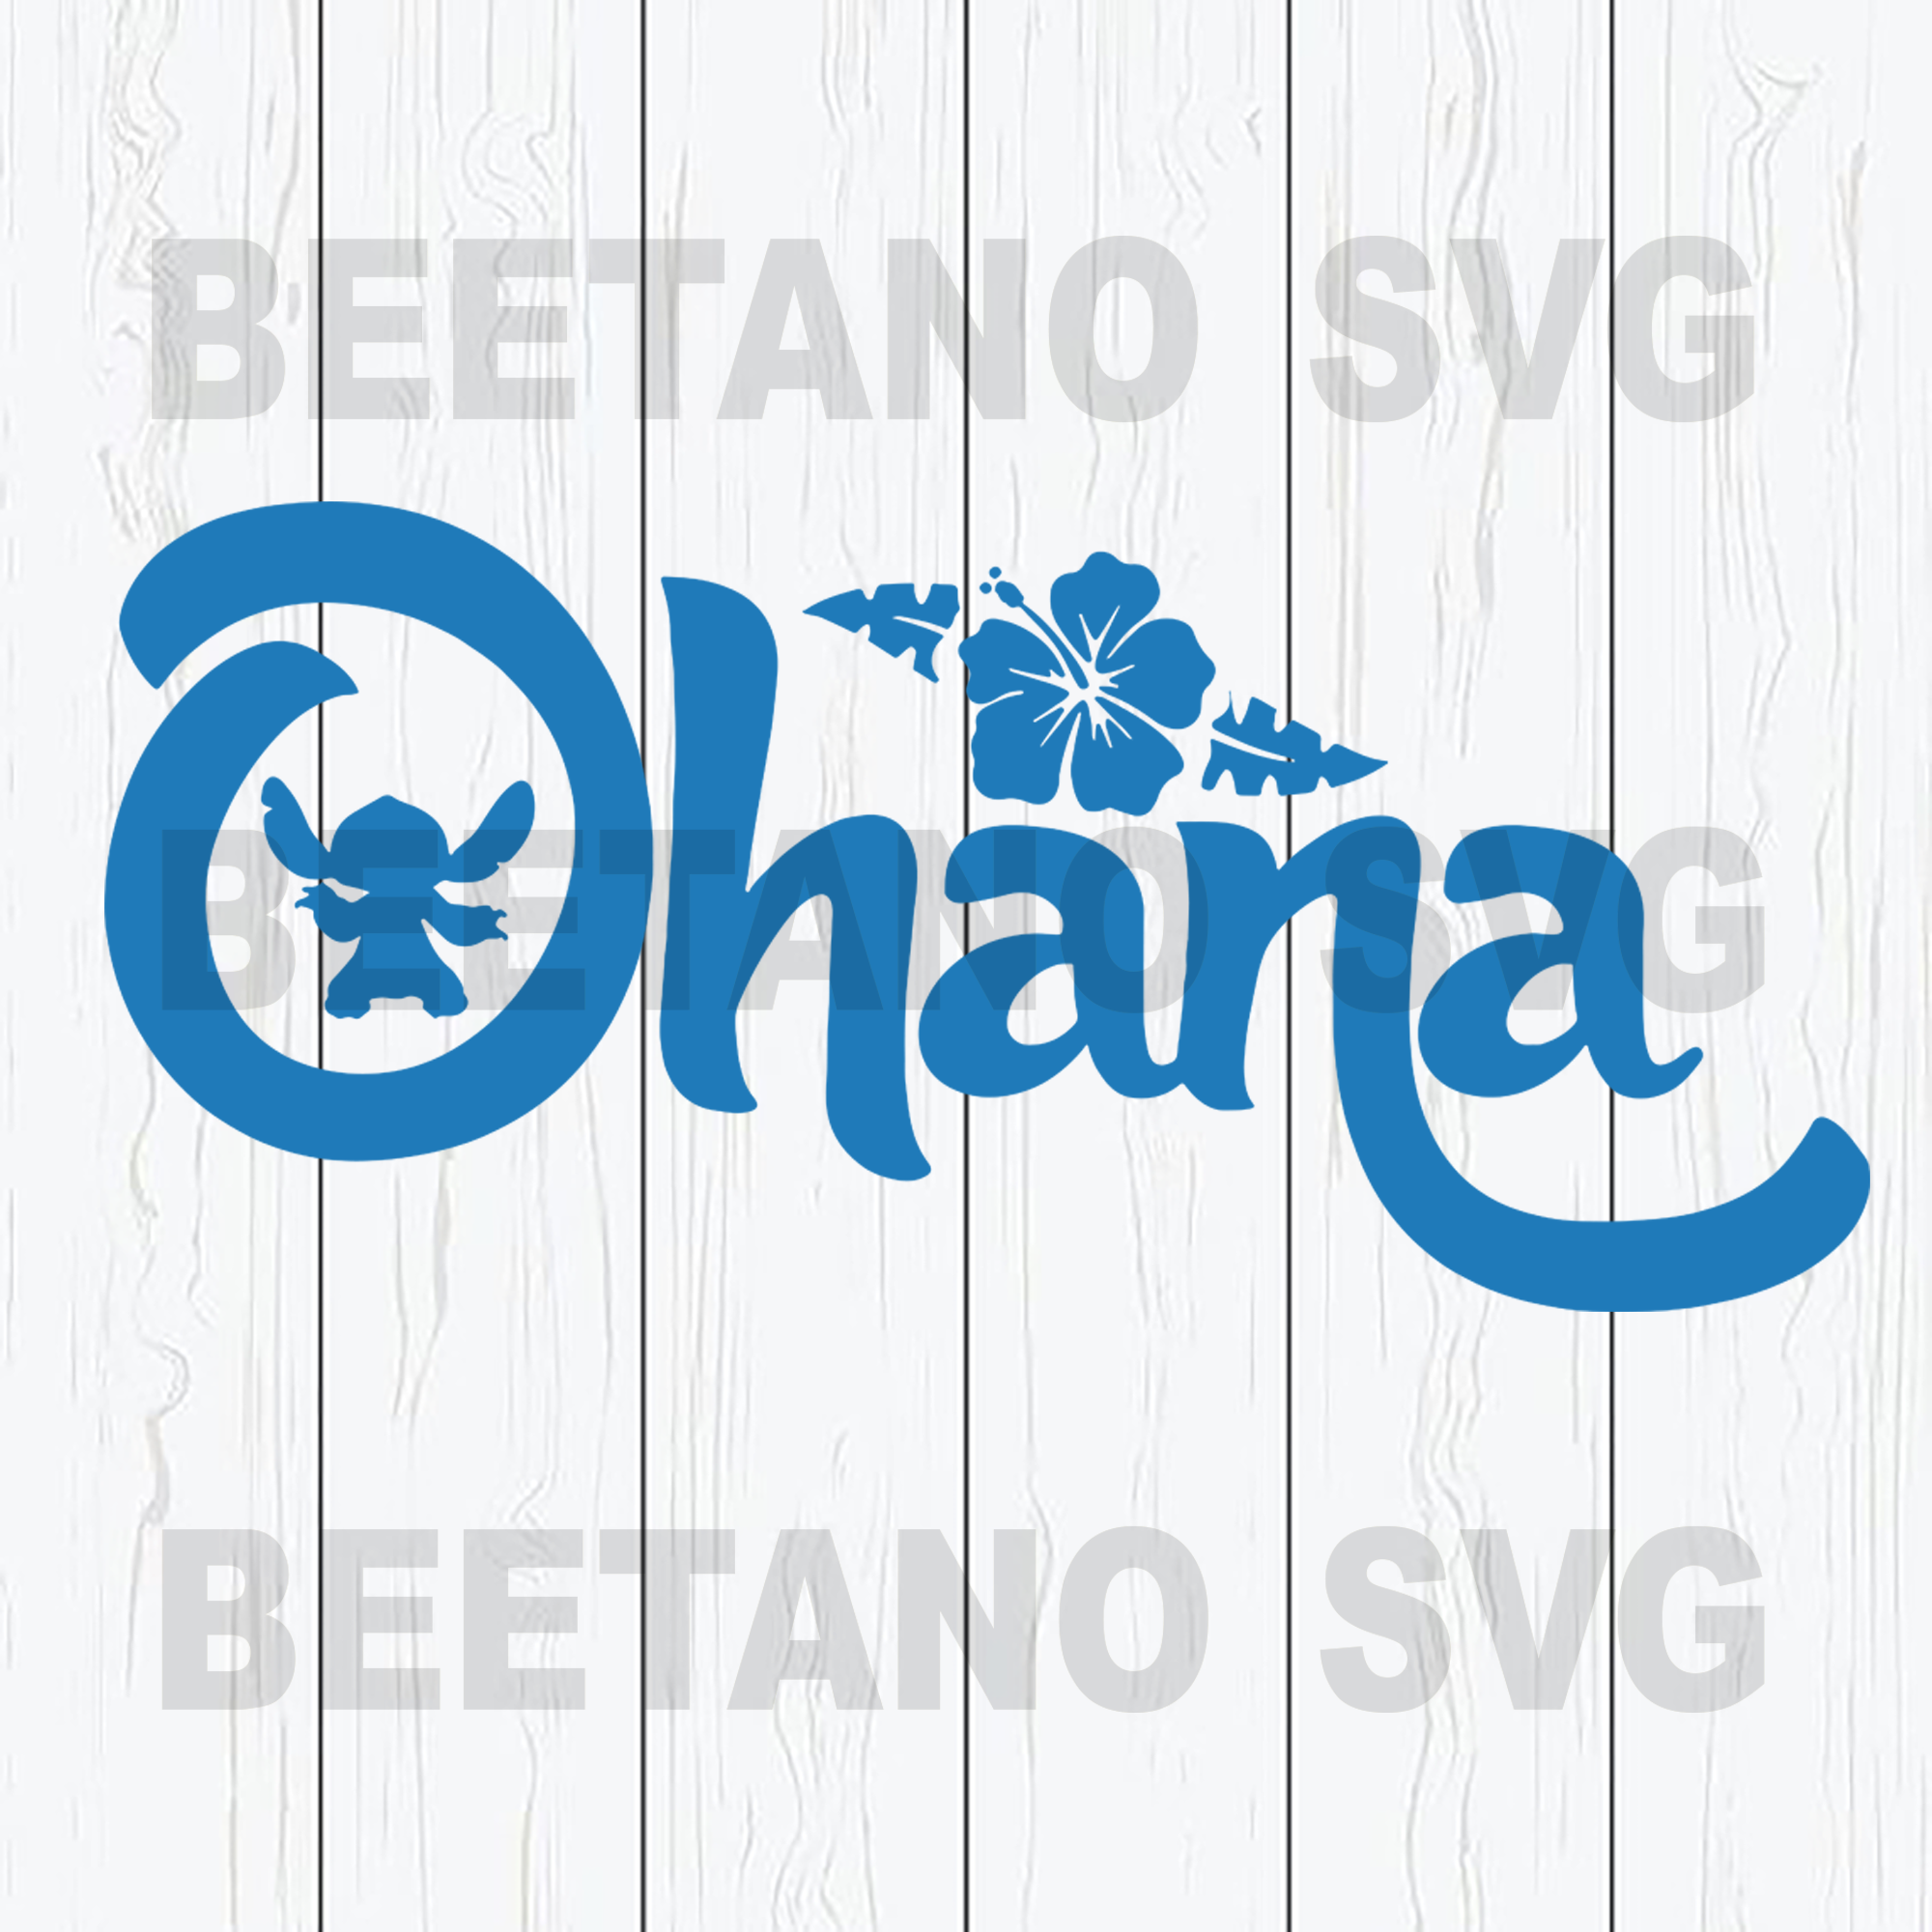 Ohana Means Svg Files, Stitch Svg, Lilo and Stitch svg, Ohana Svg, Stitch Ohana CriCut, Ohana Means Family Disney Cutting Files For Cricut, SVG, DXF, EPS, PNG Instant Download